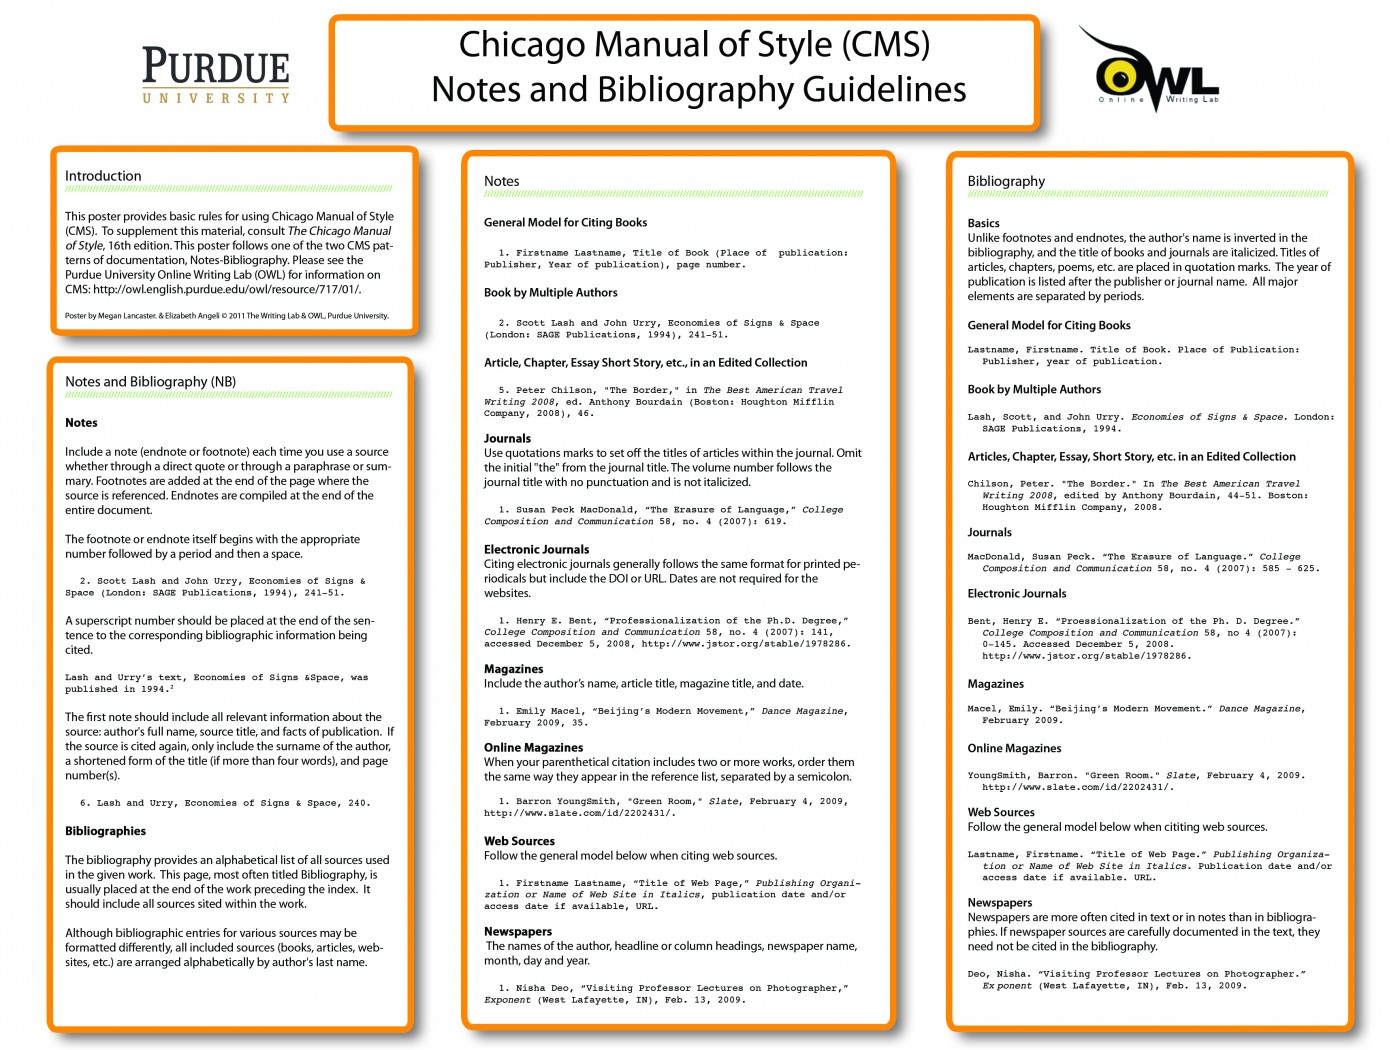 015 Chicago Manual Of Style Research Paper In Text Citation Wondrous Sample 1400